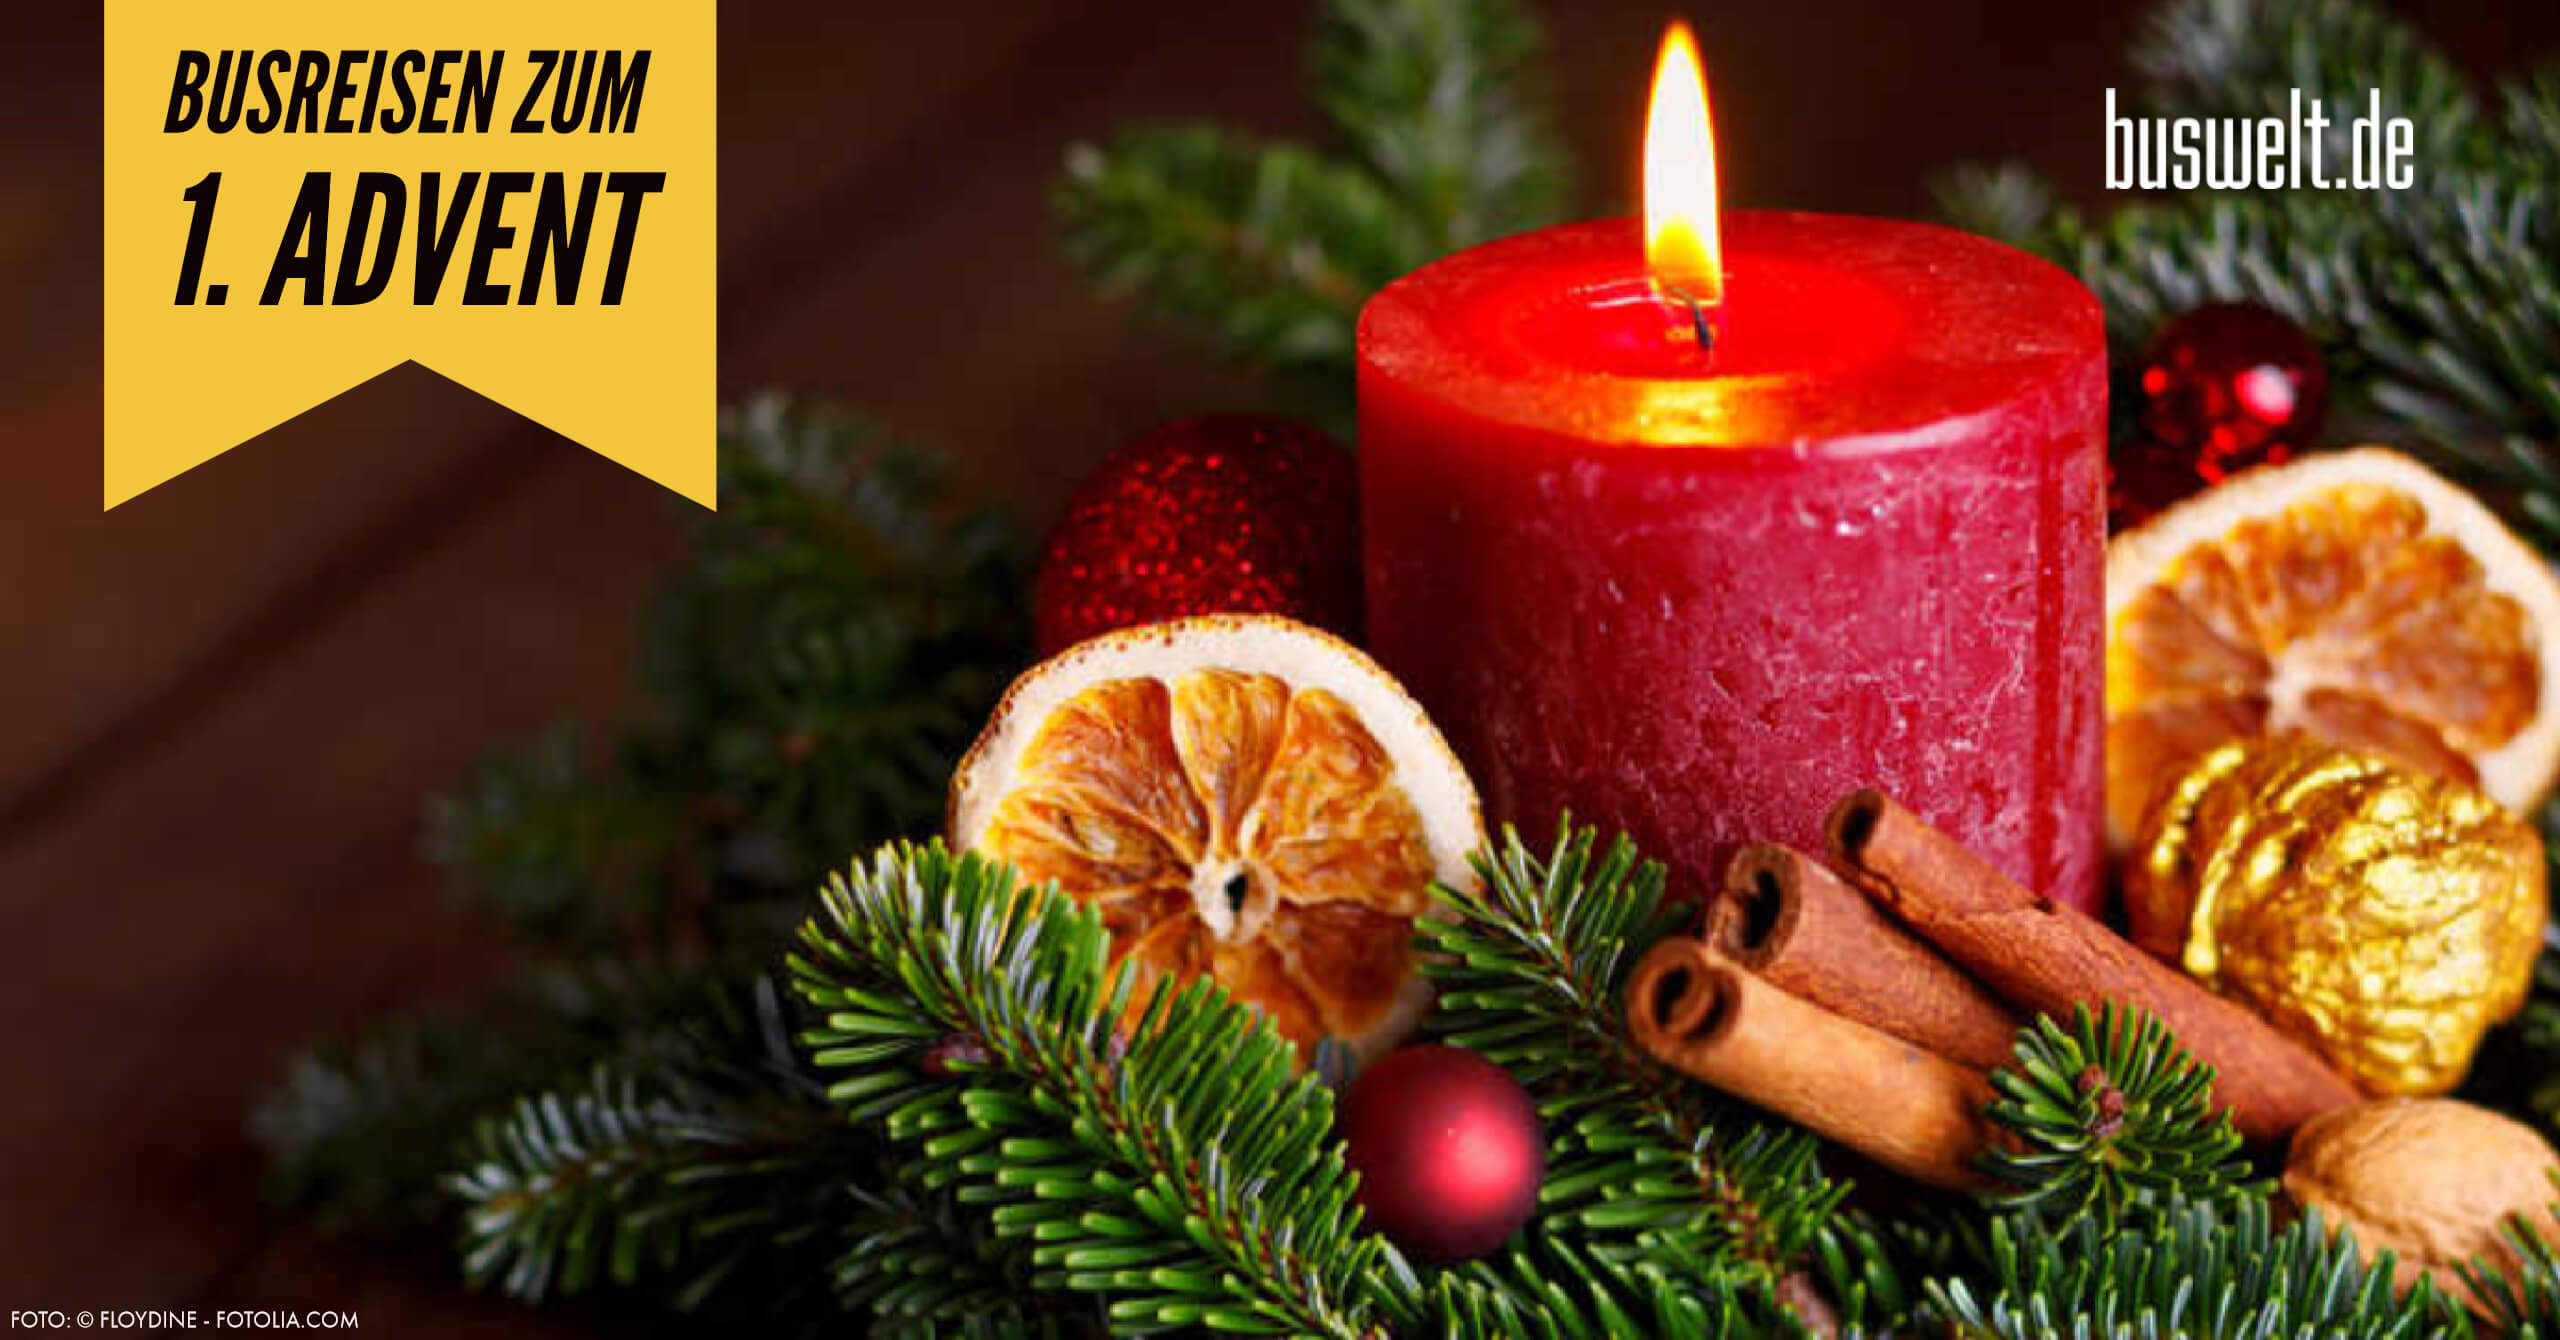 Advent Verlosung 2019